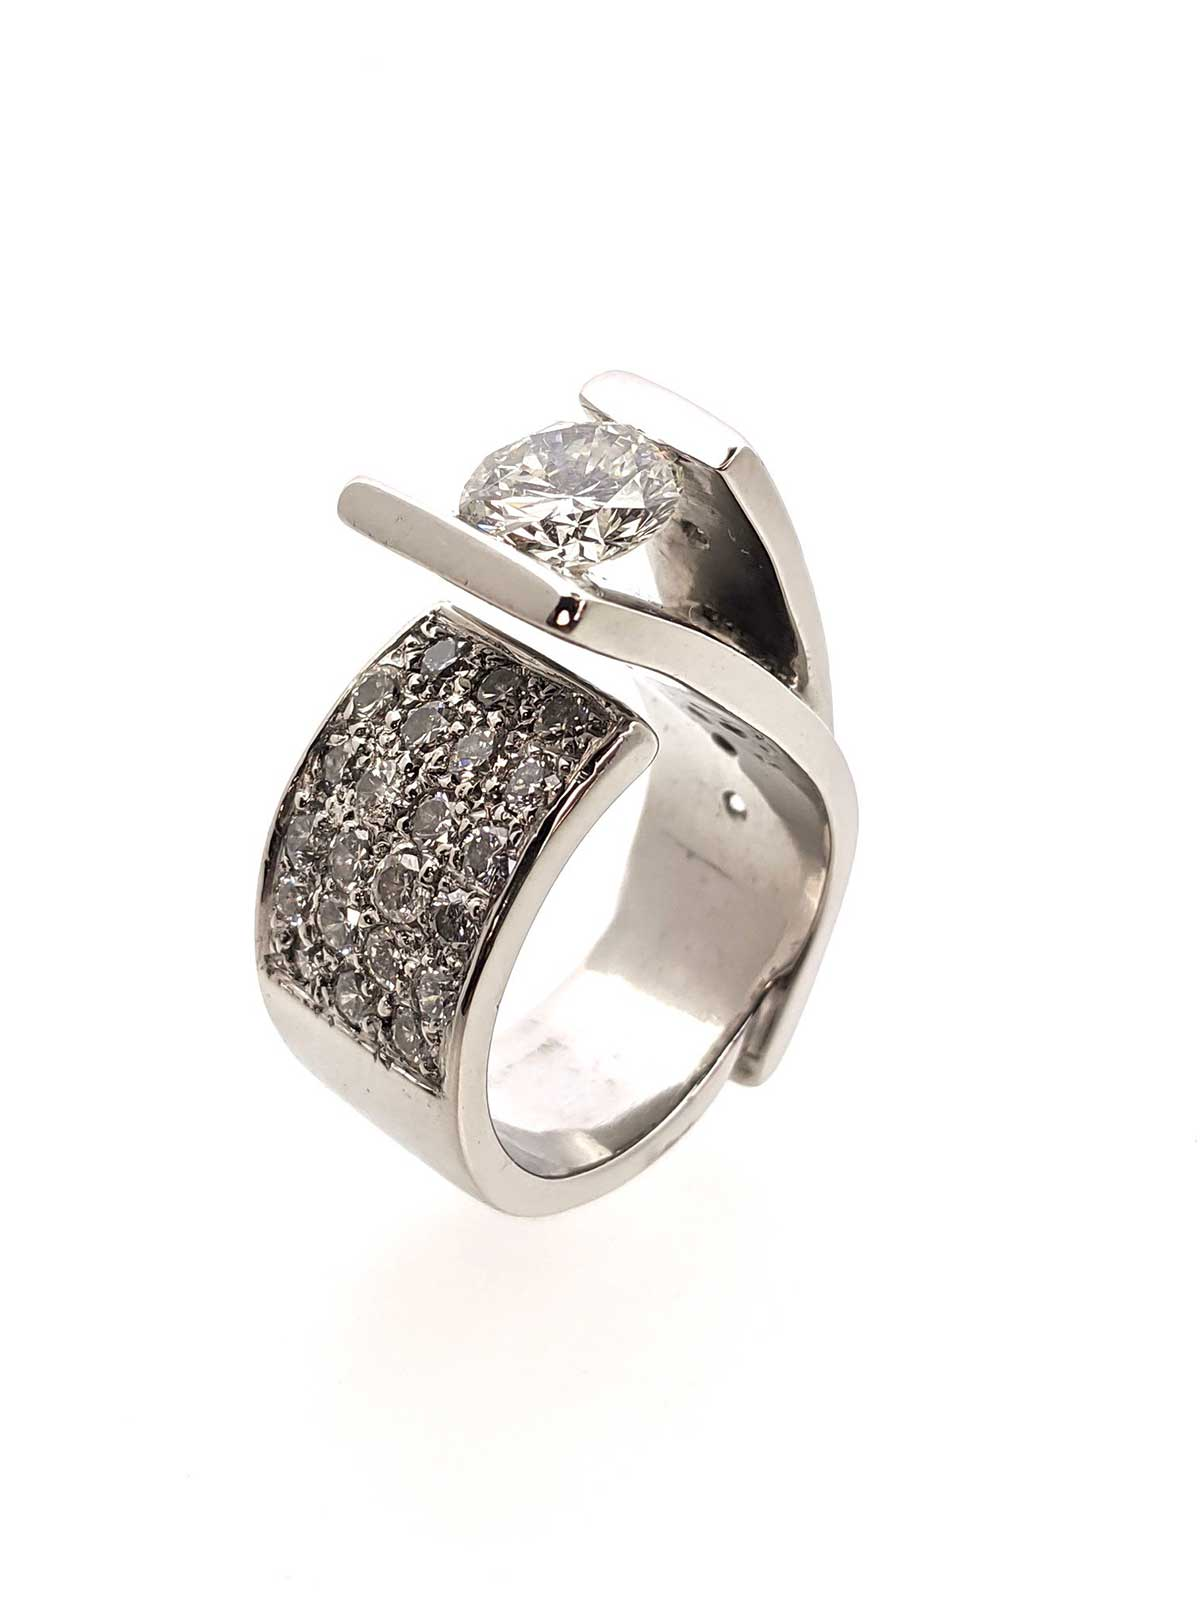 Tension-set diamond in a white gold asymmetrical split ring with pave set diamonds on the opposite side